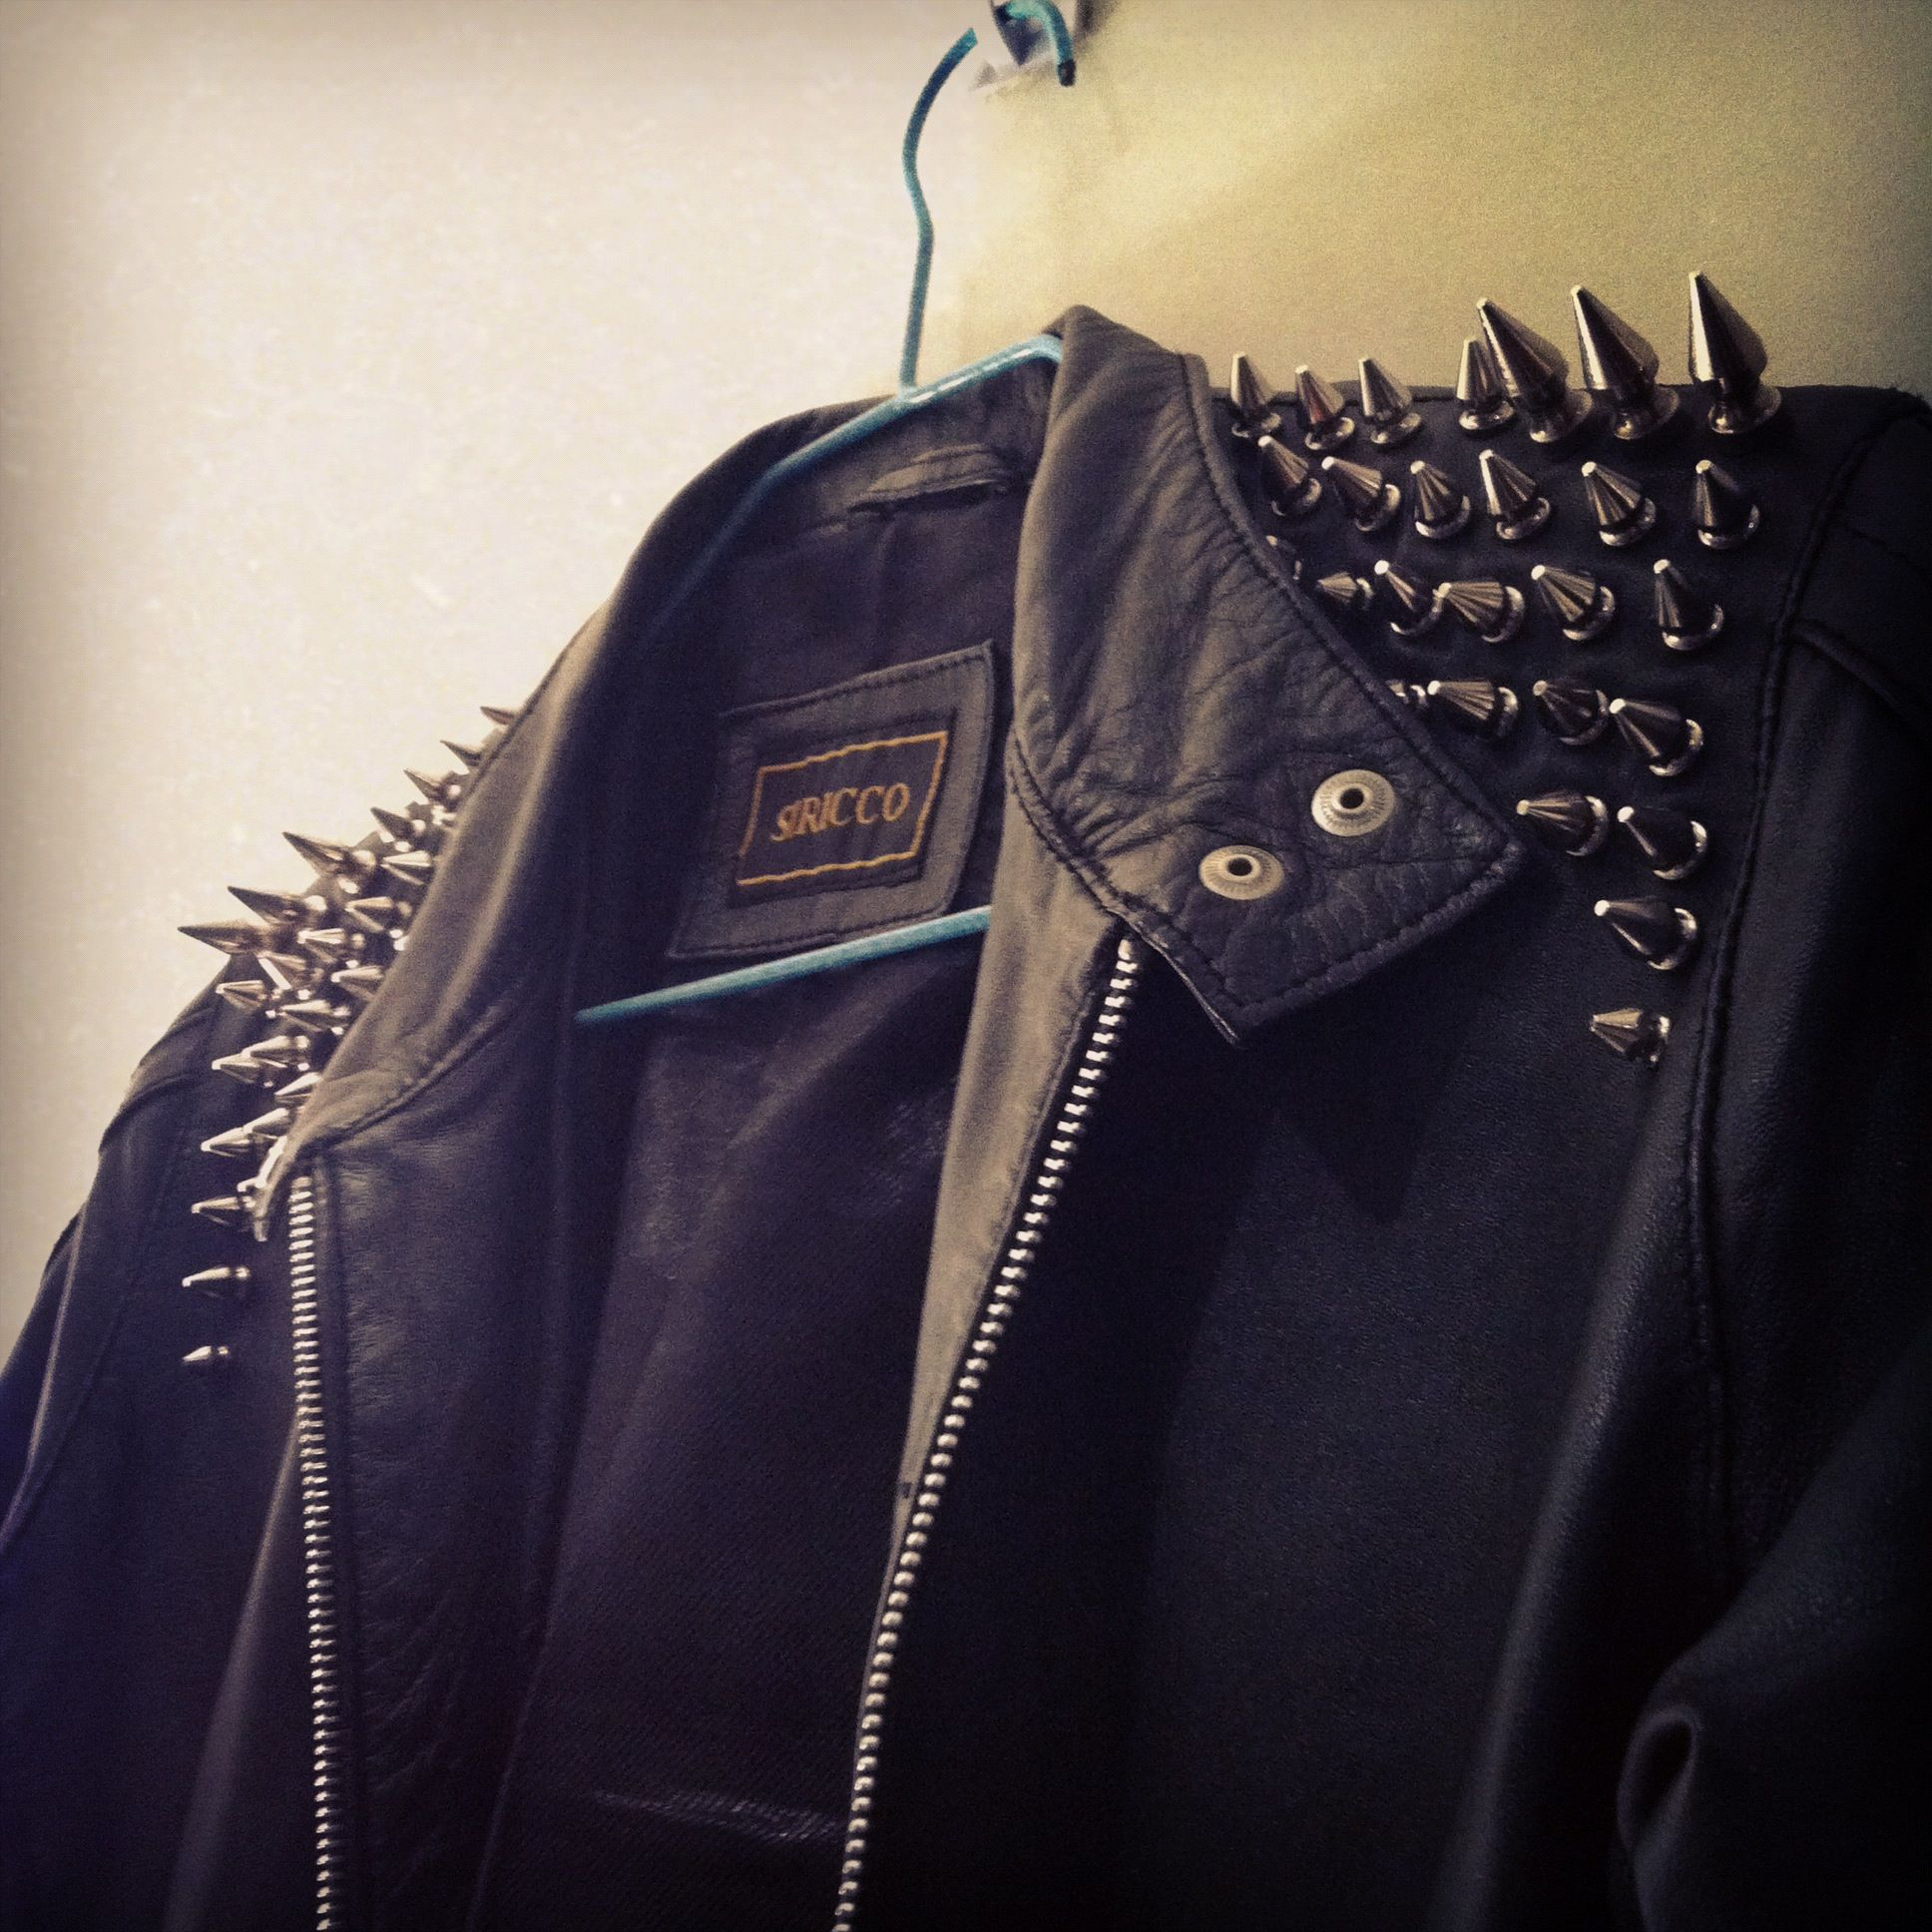 diy spiked shoulder leather jacket detail #leather #spikes #studs